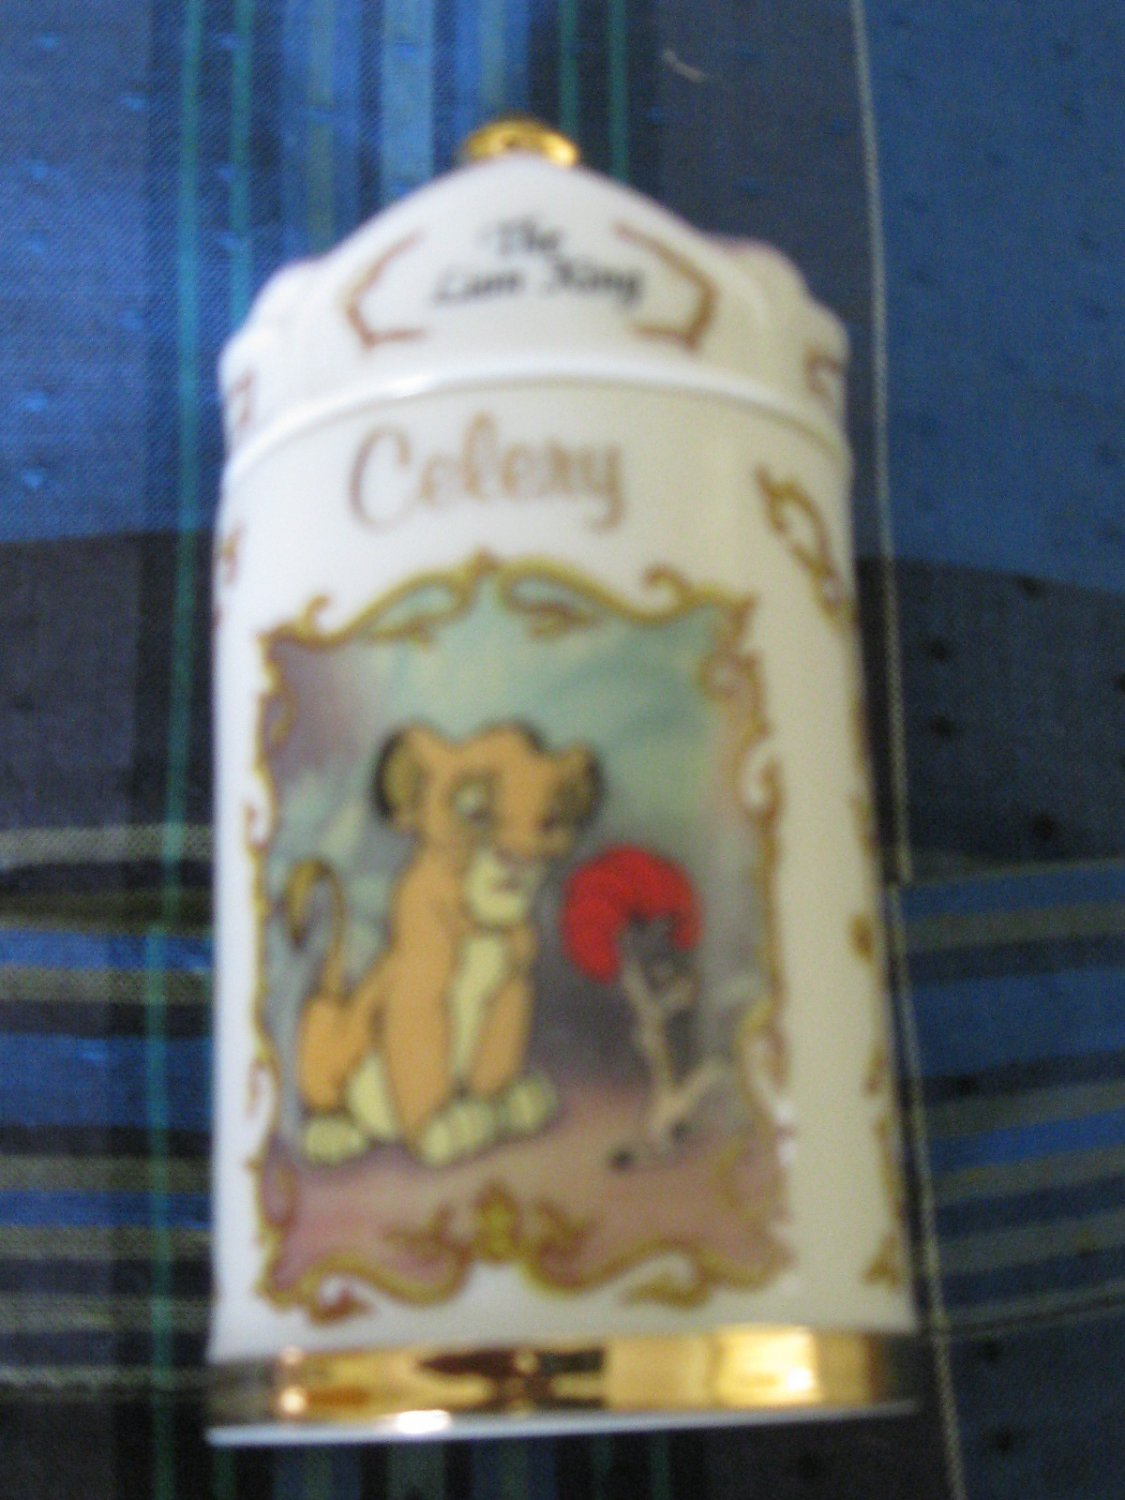 Awesome Disney The Lion King Celery Spice Jar Lenox 1995 Collection